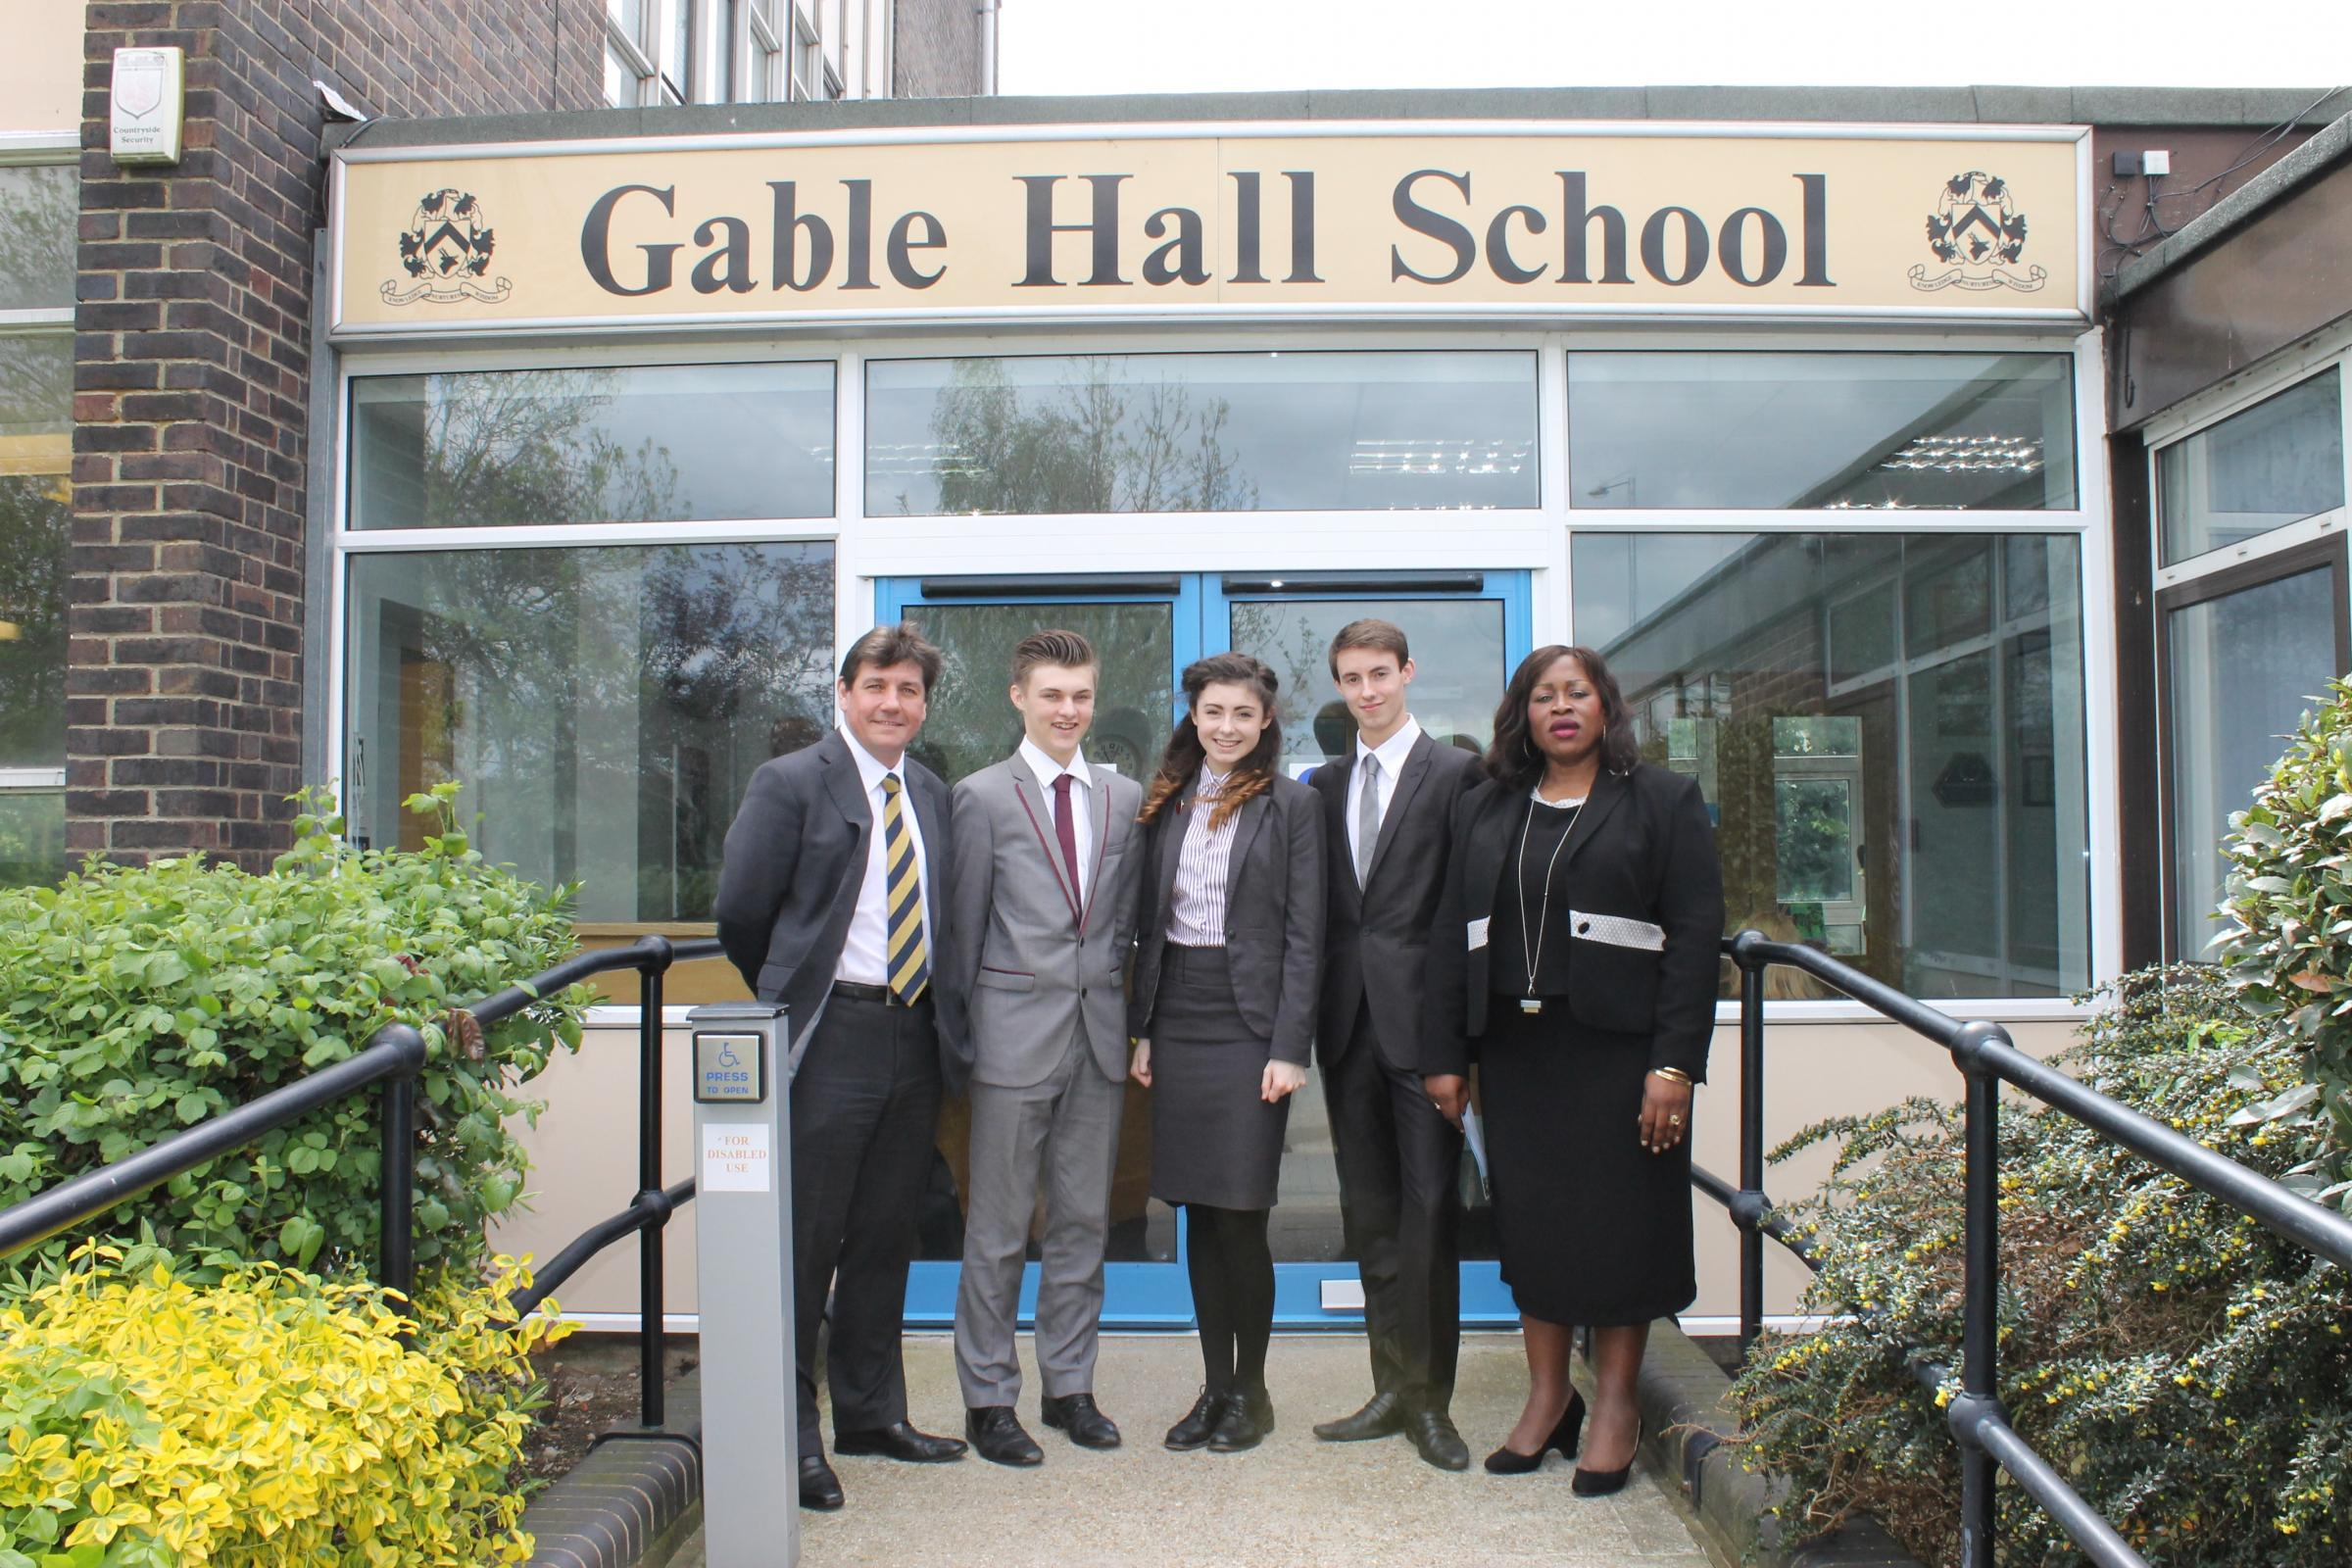 Stephen Metcalfe with senior pupils and headteacher Dr Sofina Asong